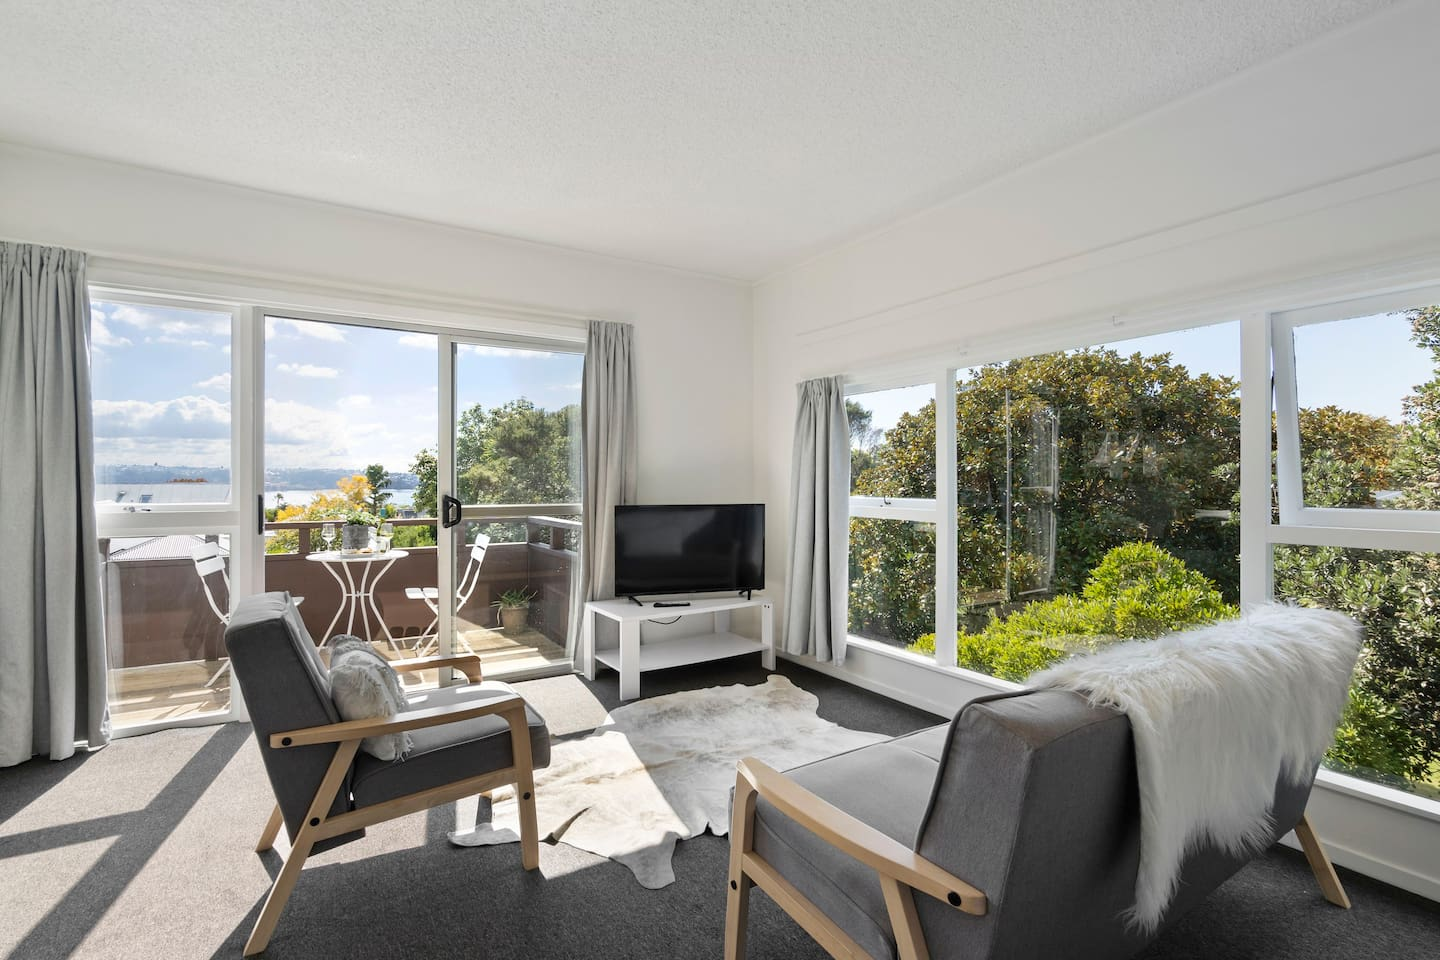 Sunny, spacious living room area with a view of the harbour.